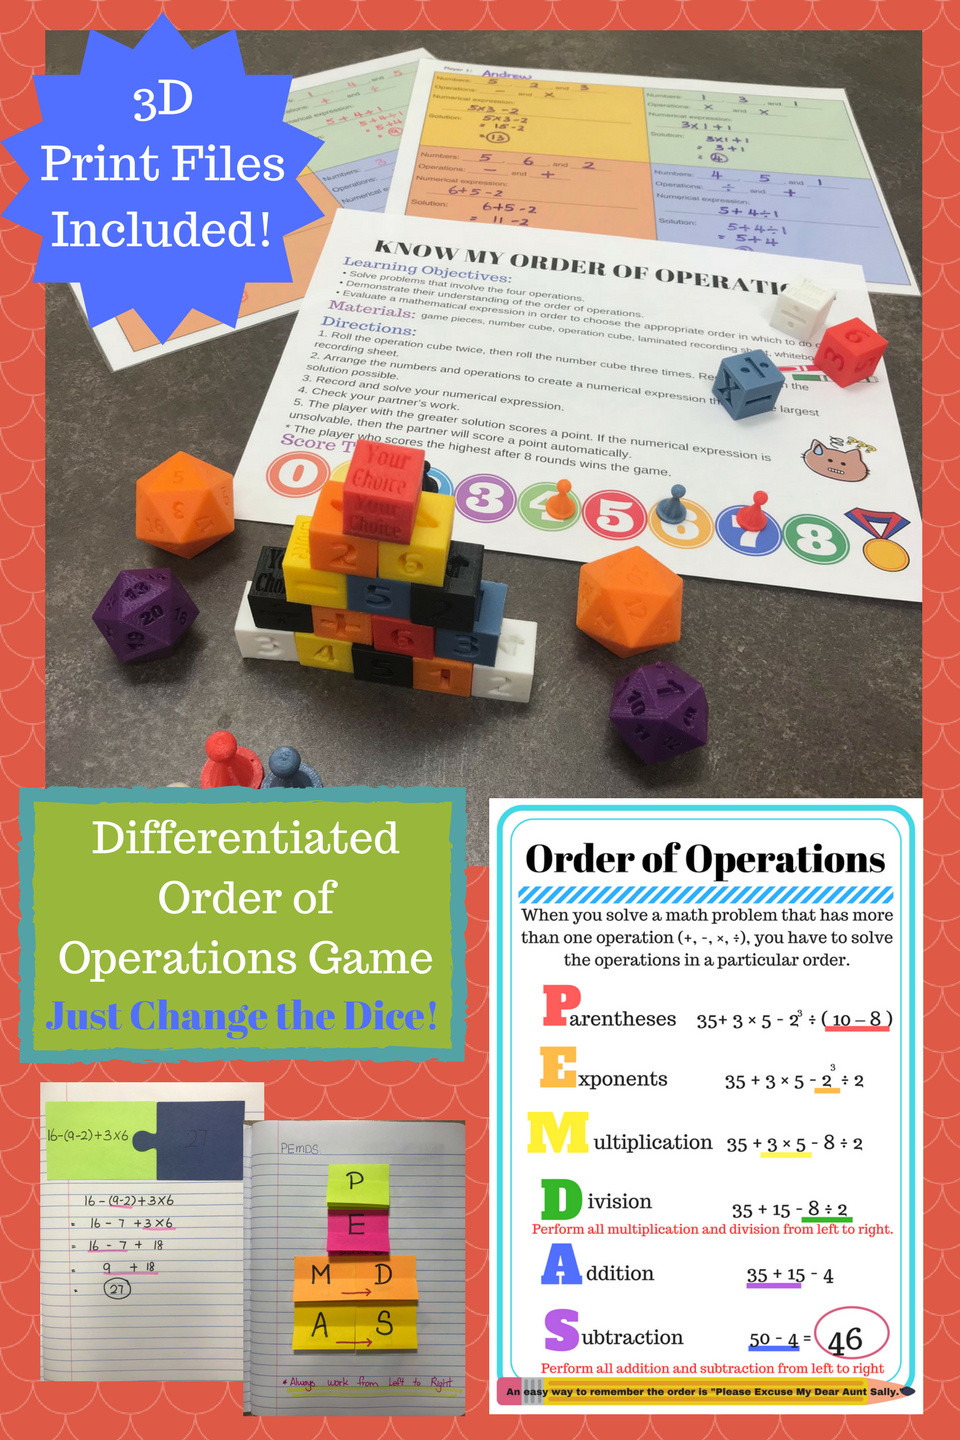 Differentiated order of operations game.png